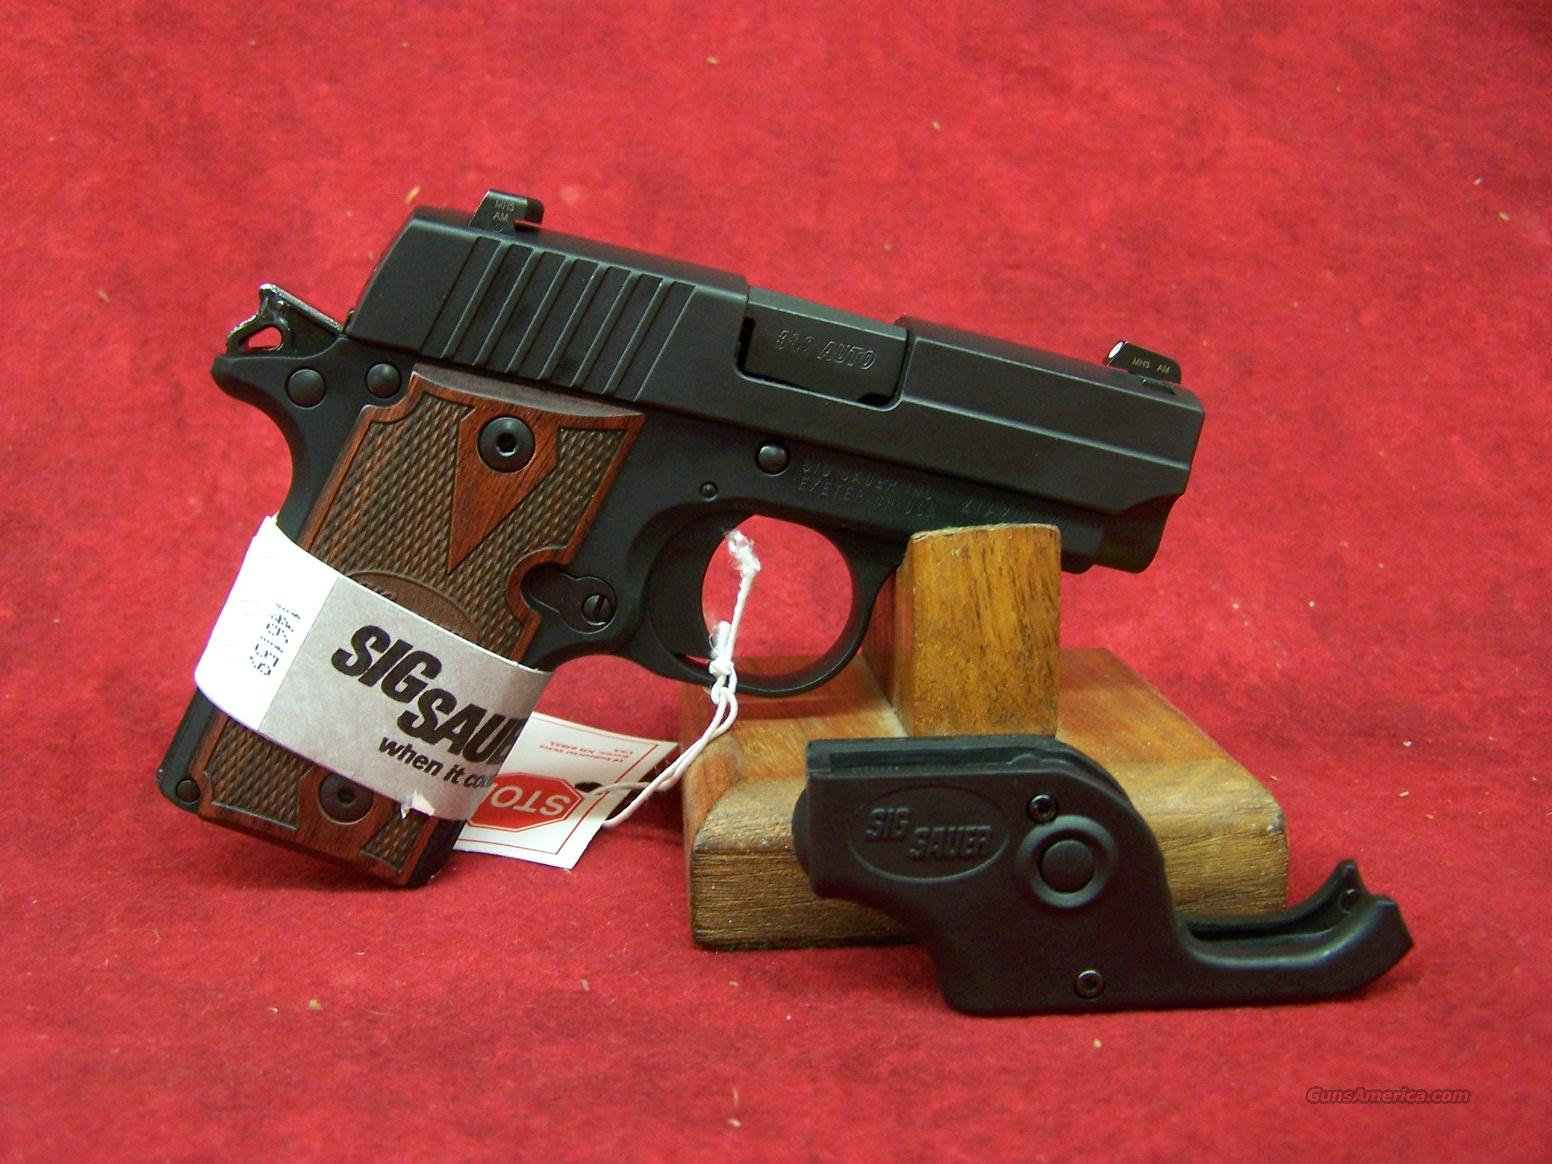 Sig Sauer P238 .380 ACP Rosewood w/Laser  (238-380-RG-LSR)  Guns > Pistols > Sig - Sauer/Sigarms Pistols > P238